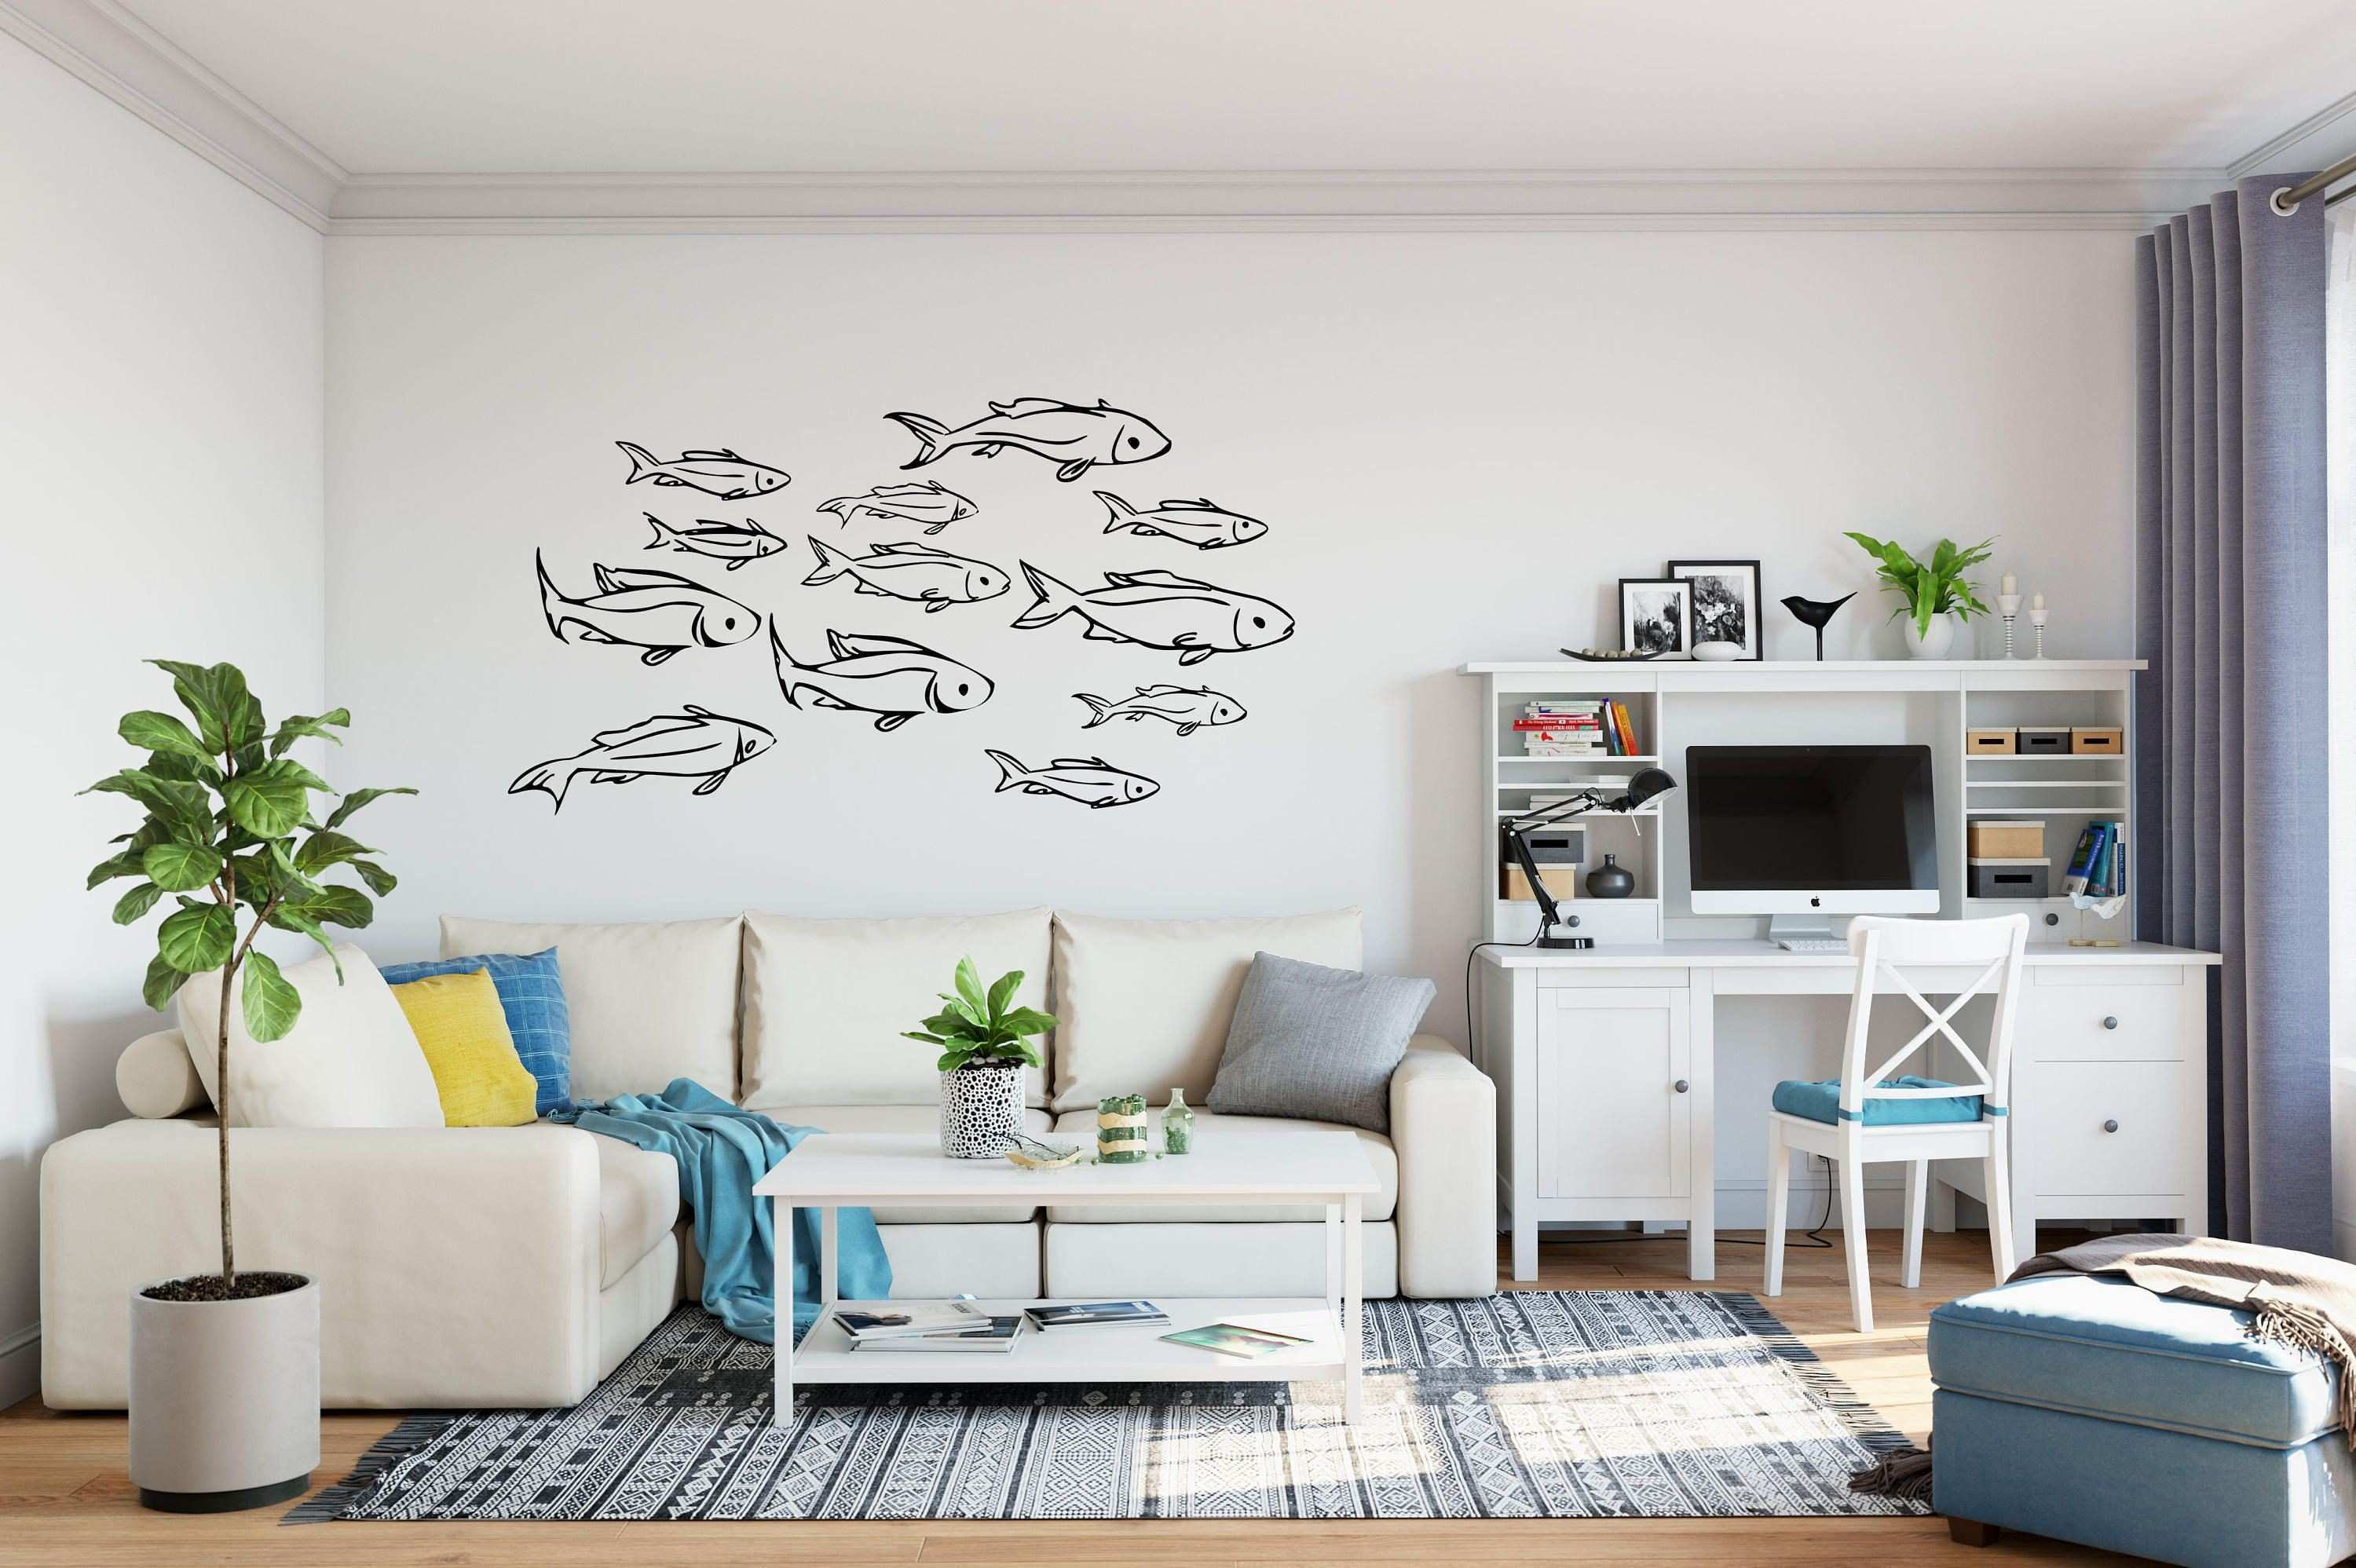 Wall Sayings Lovely School Of See Through Fish Decals On Removable Vinyl Decal Of